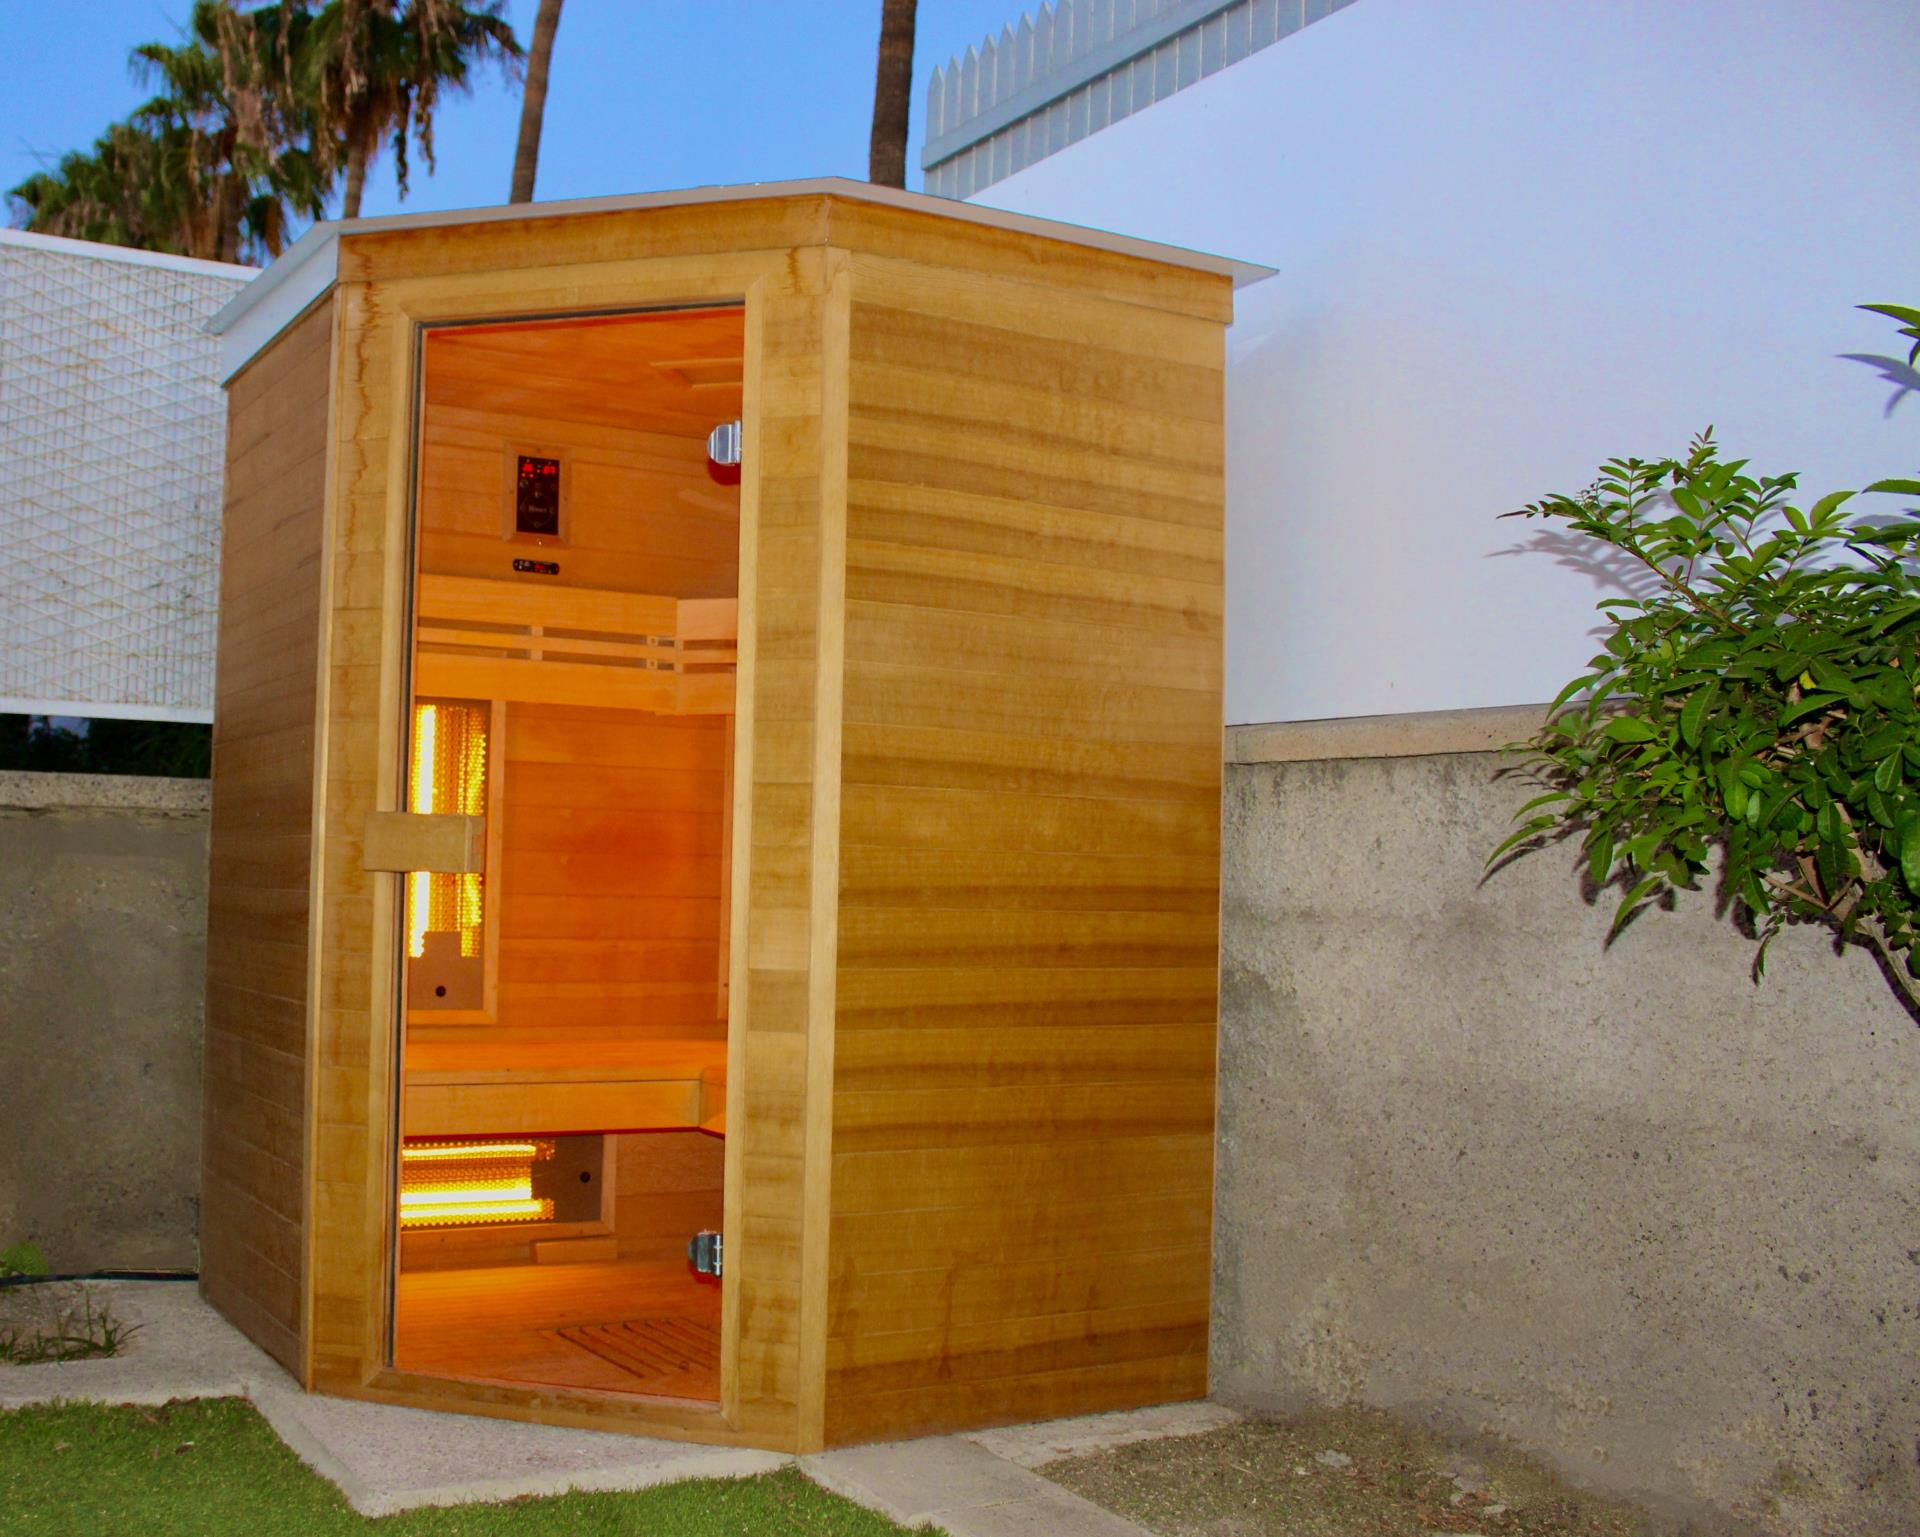 Gay Resort Hotel Club torso Gran Canaria sauna